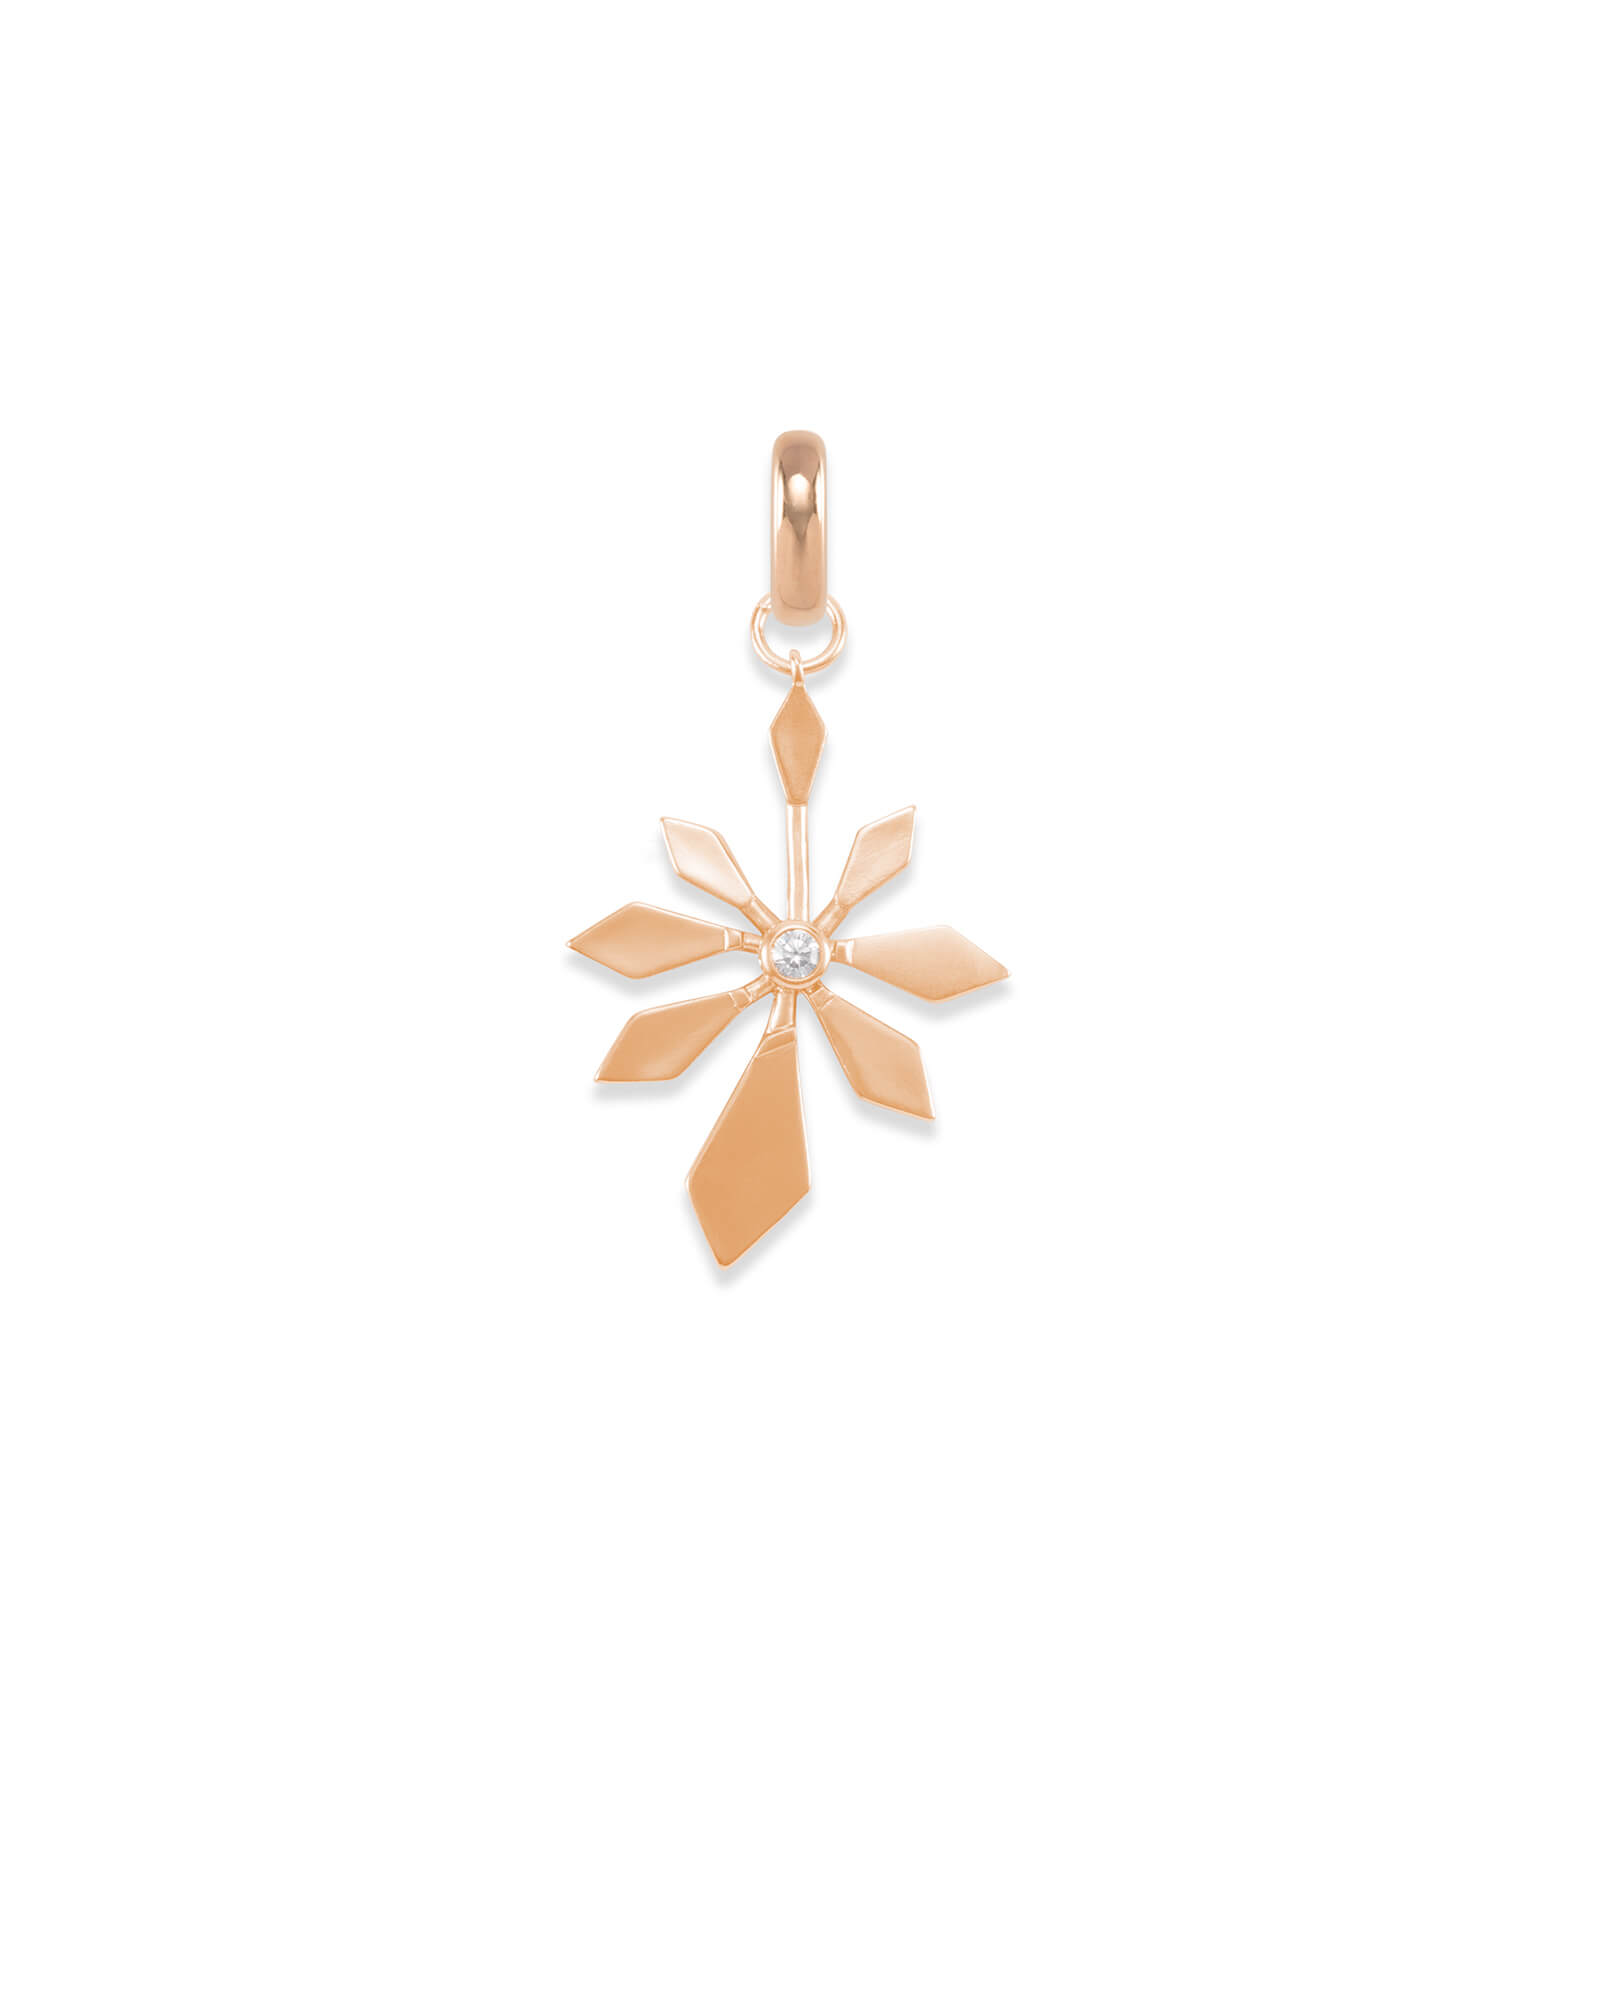 Geometric Flower Charm in Rose Gold